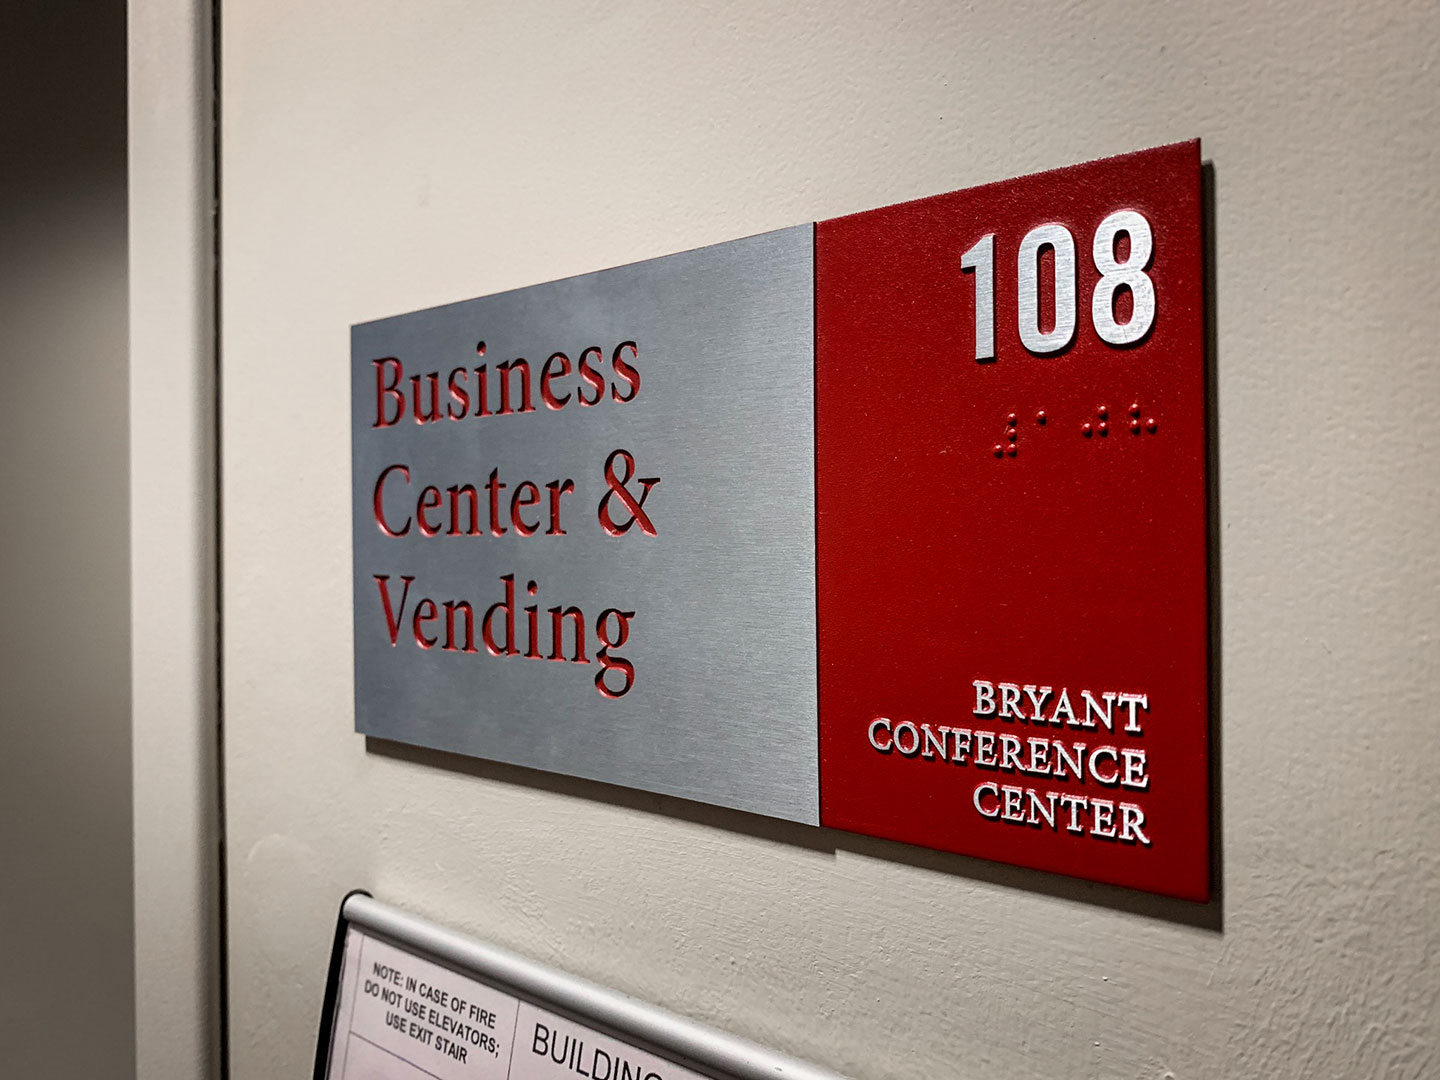 Branded ADA room identification signage at the Bryant Conference Center